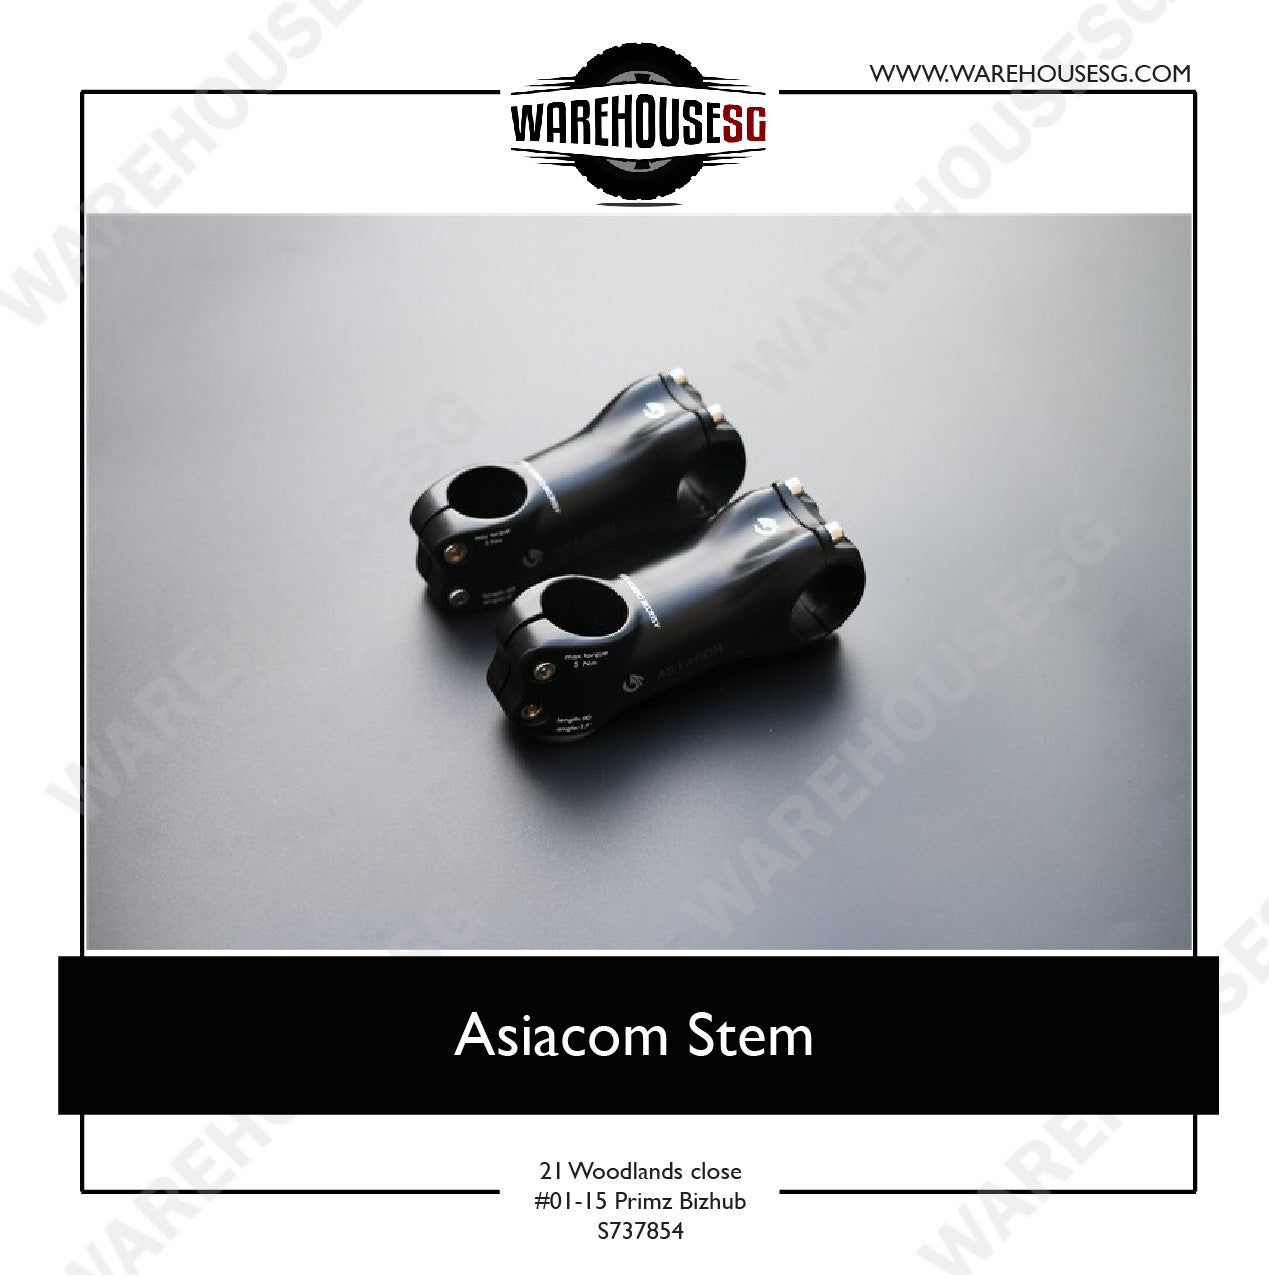 Asiacom Stem